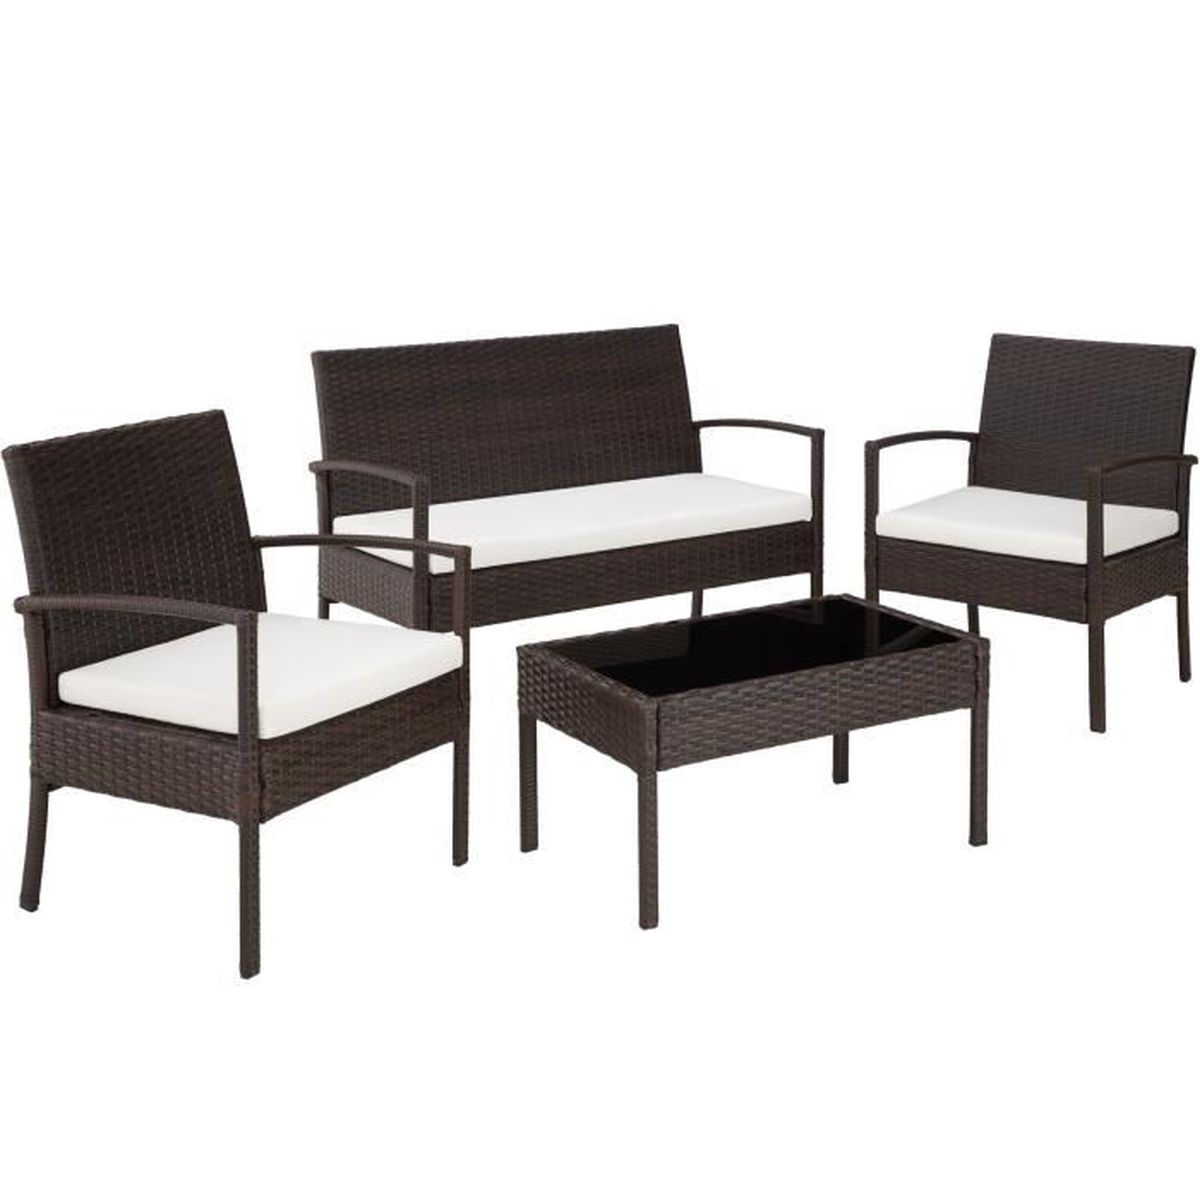 salon de jardin sparte 2 fauteuils 1 canap 1 table en r sine tress e poly rotin marron. Black Bedroom Furniture Sets. Home Design Ideas